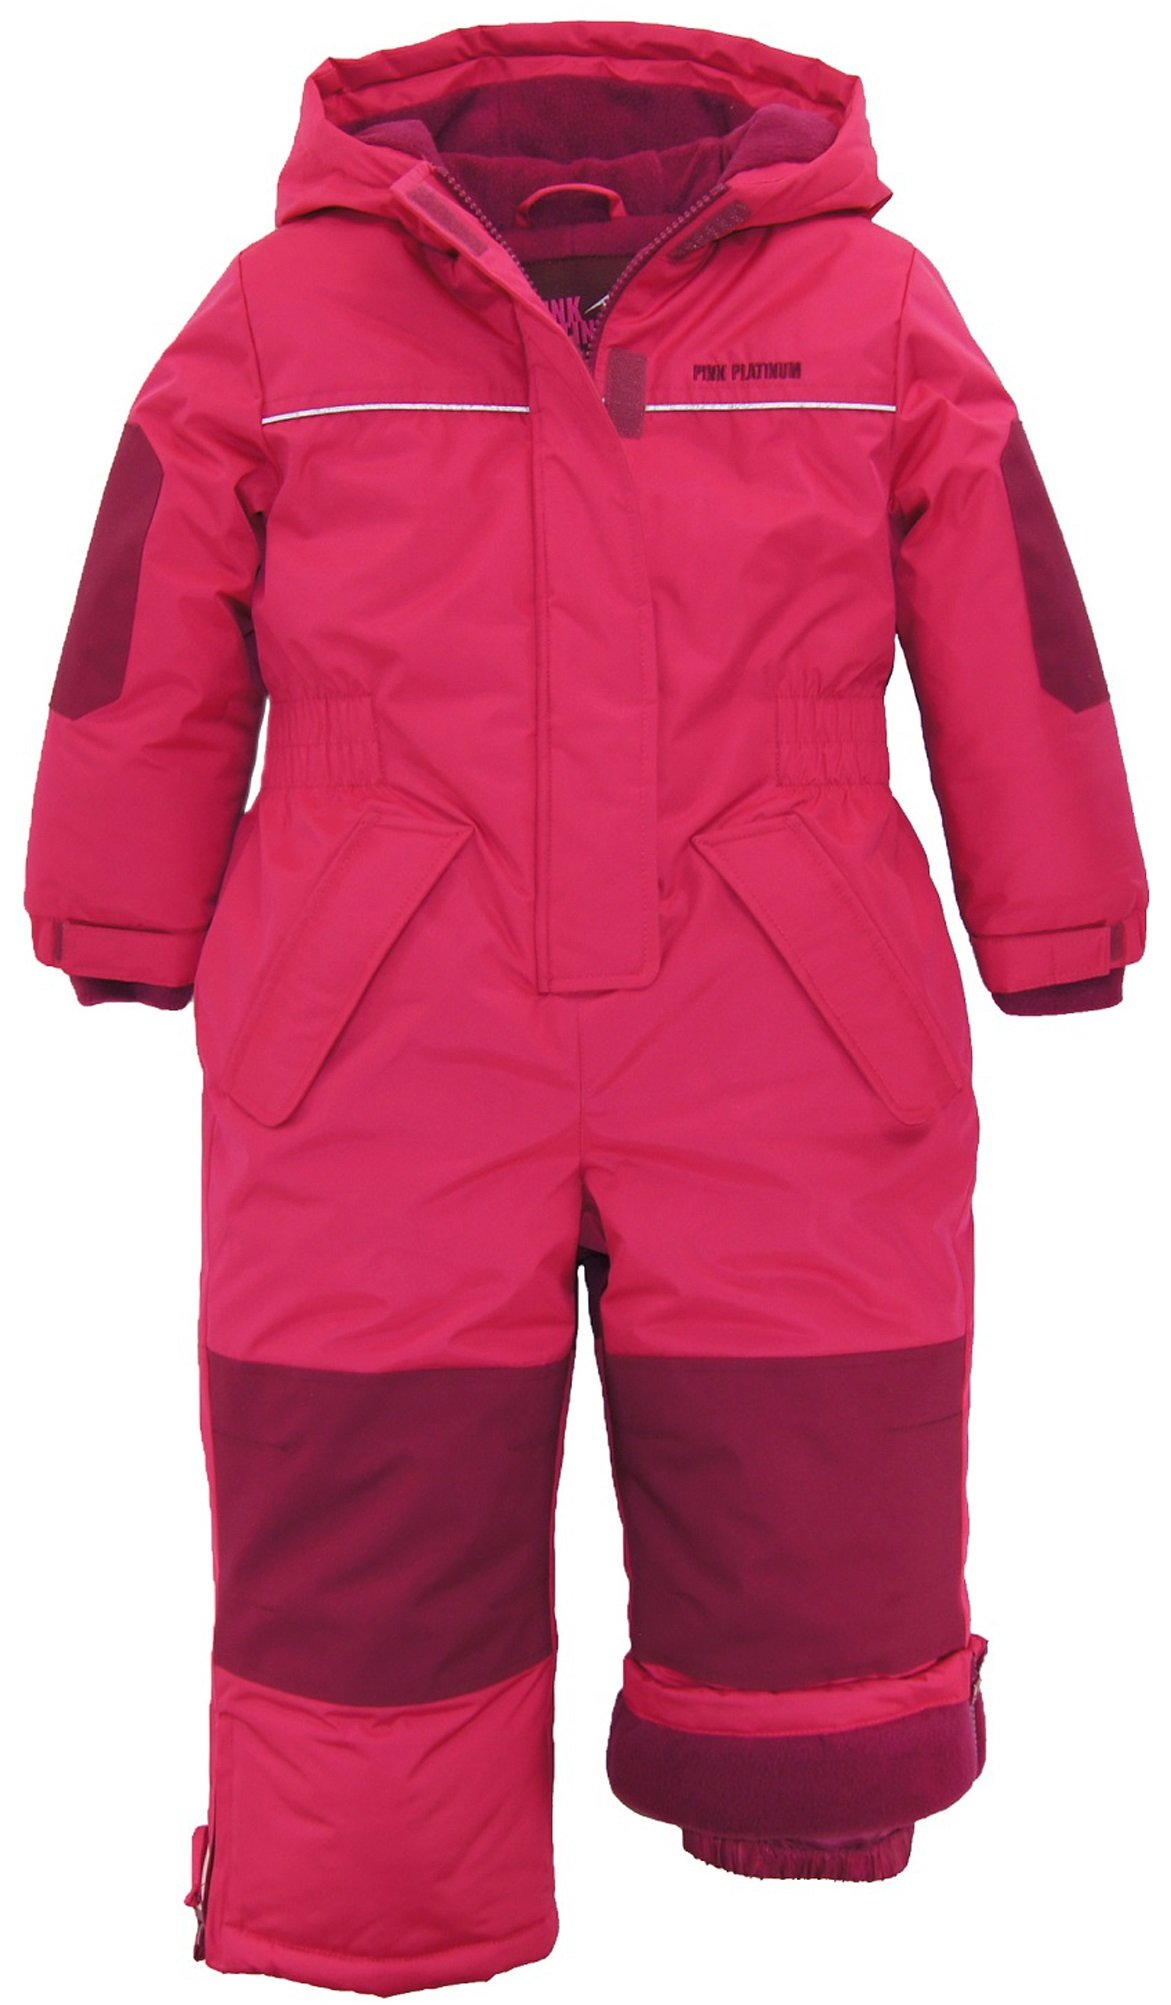 Pink Platinum Snow Mobile For Girls, Babies & Toddlers - 1-Piece Snowsuit